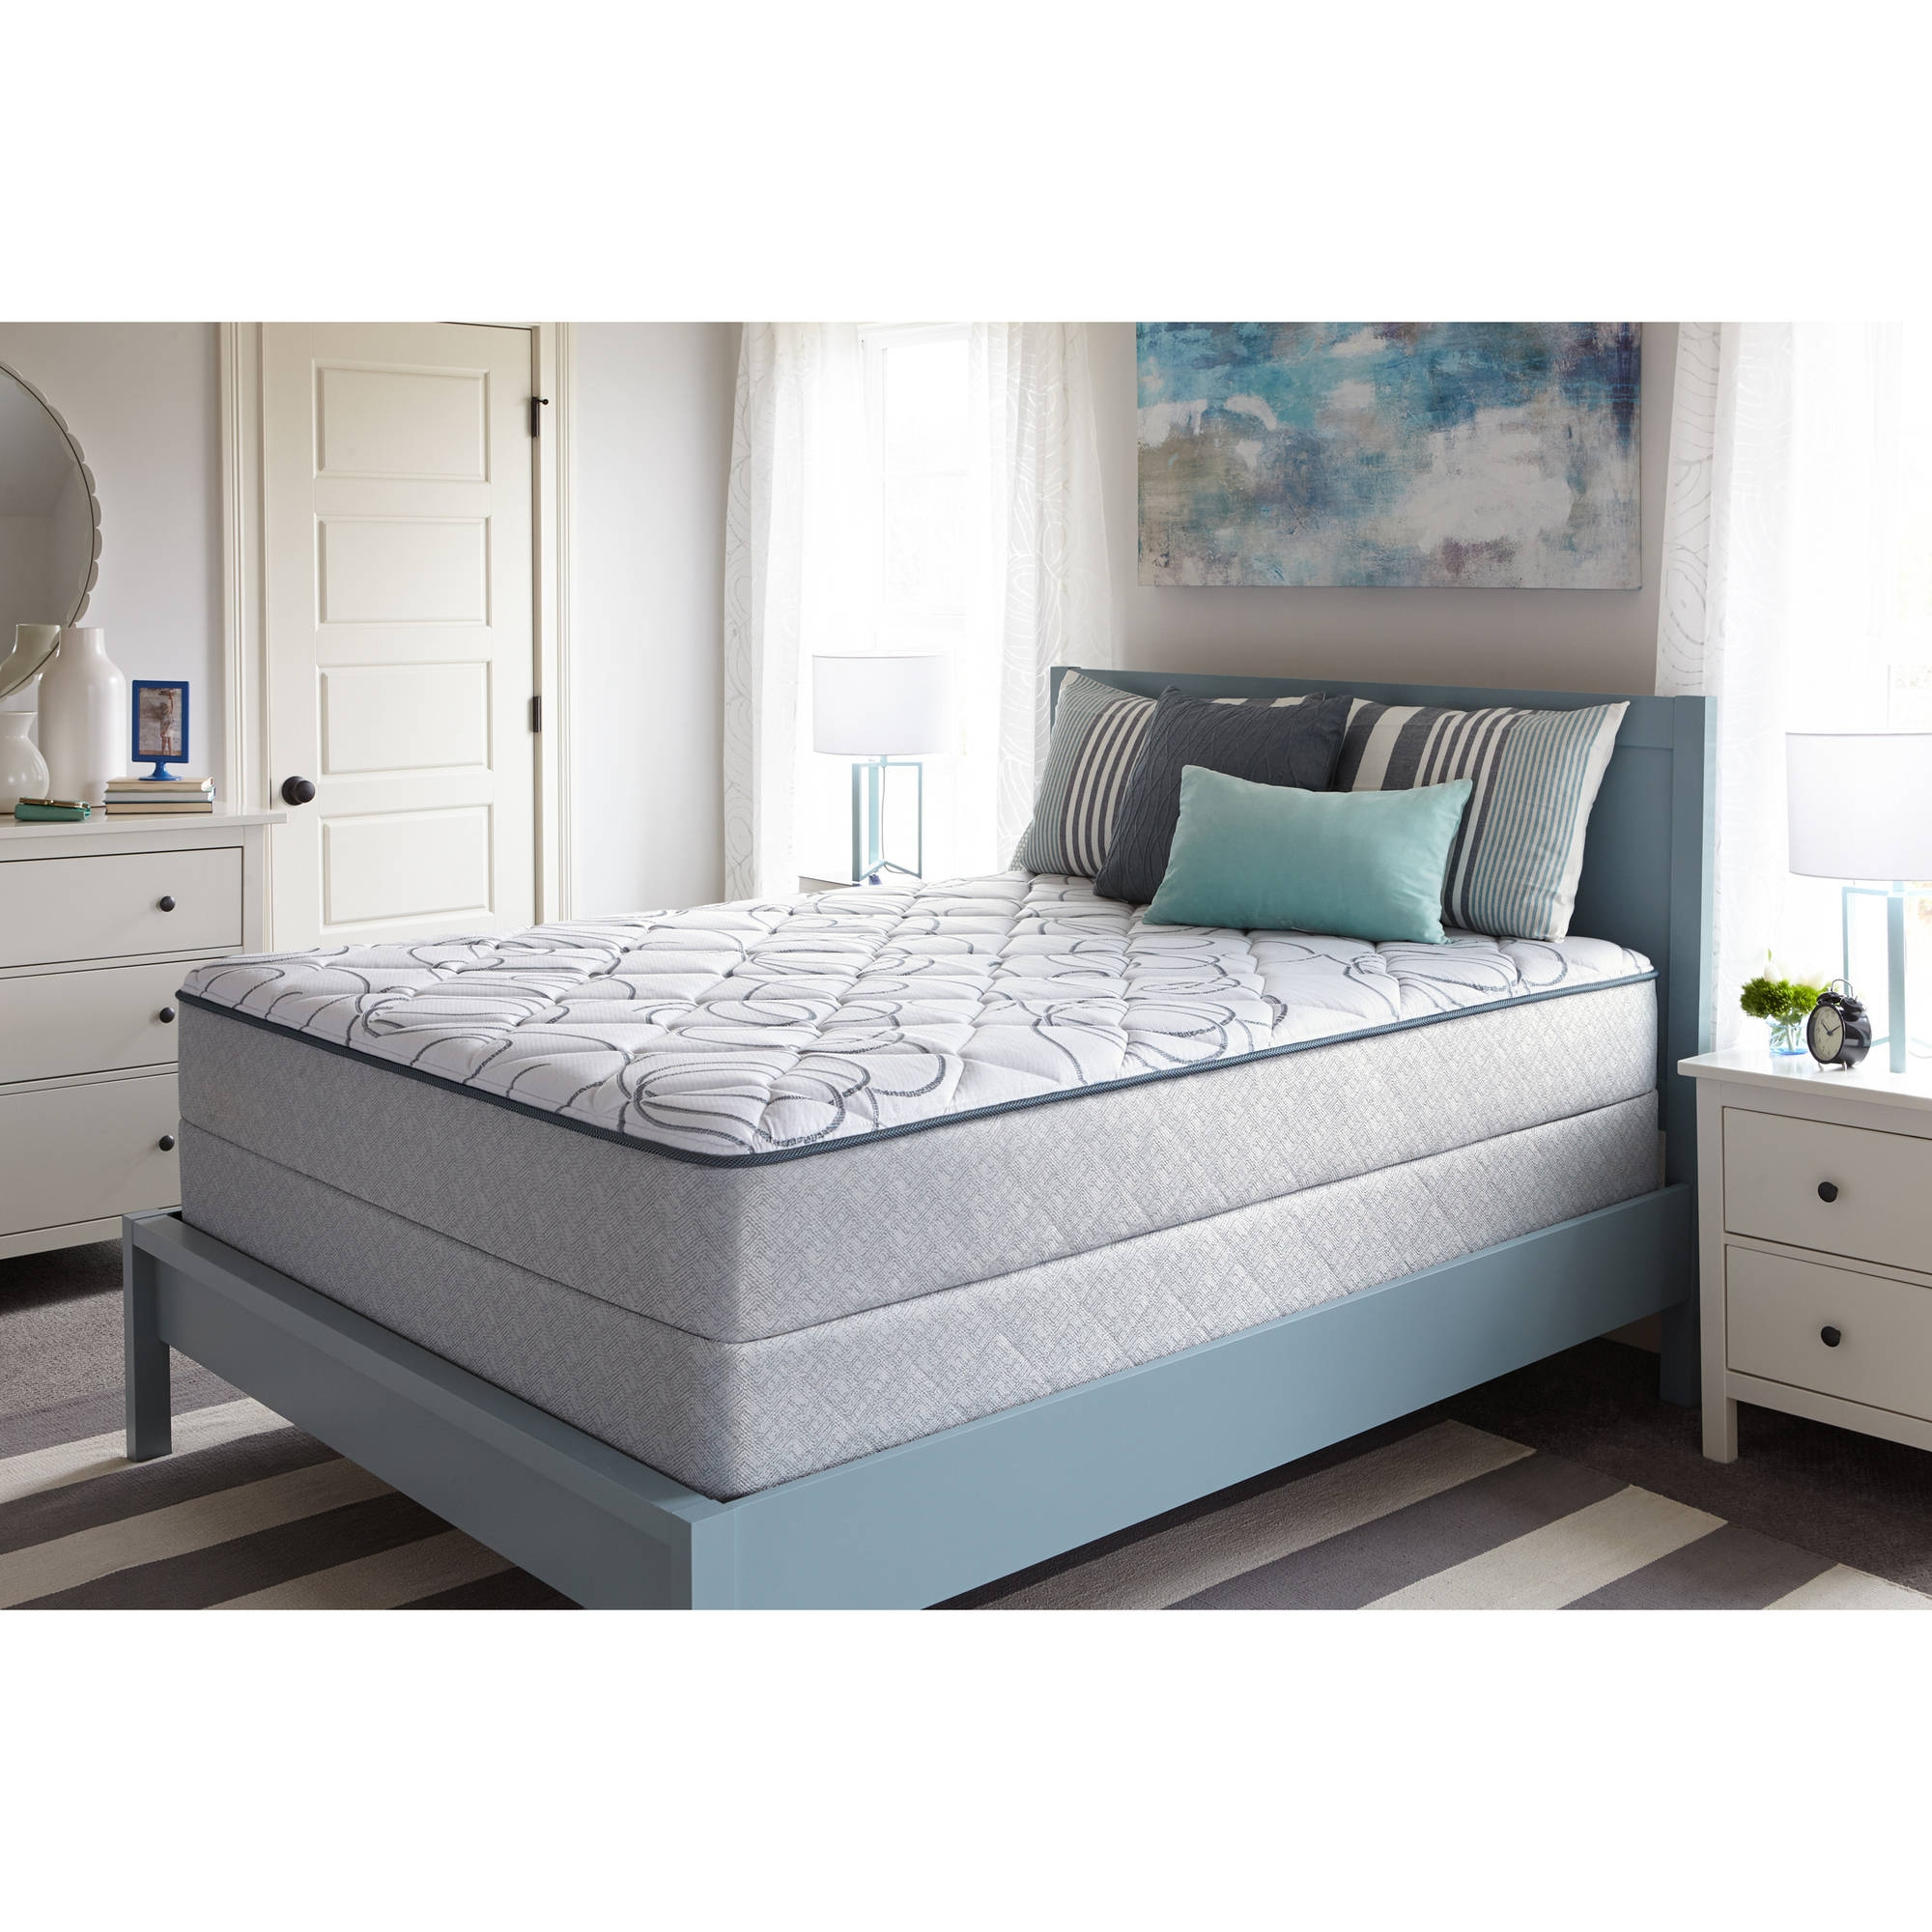 Permalink to Mattress Firm Bed Frame